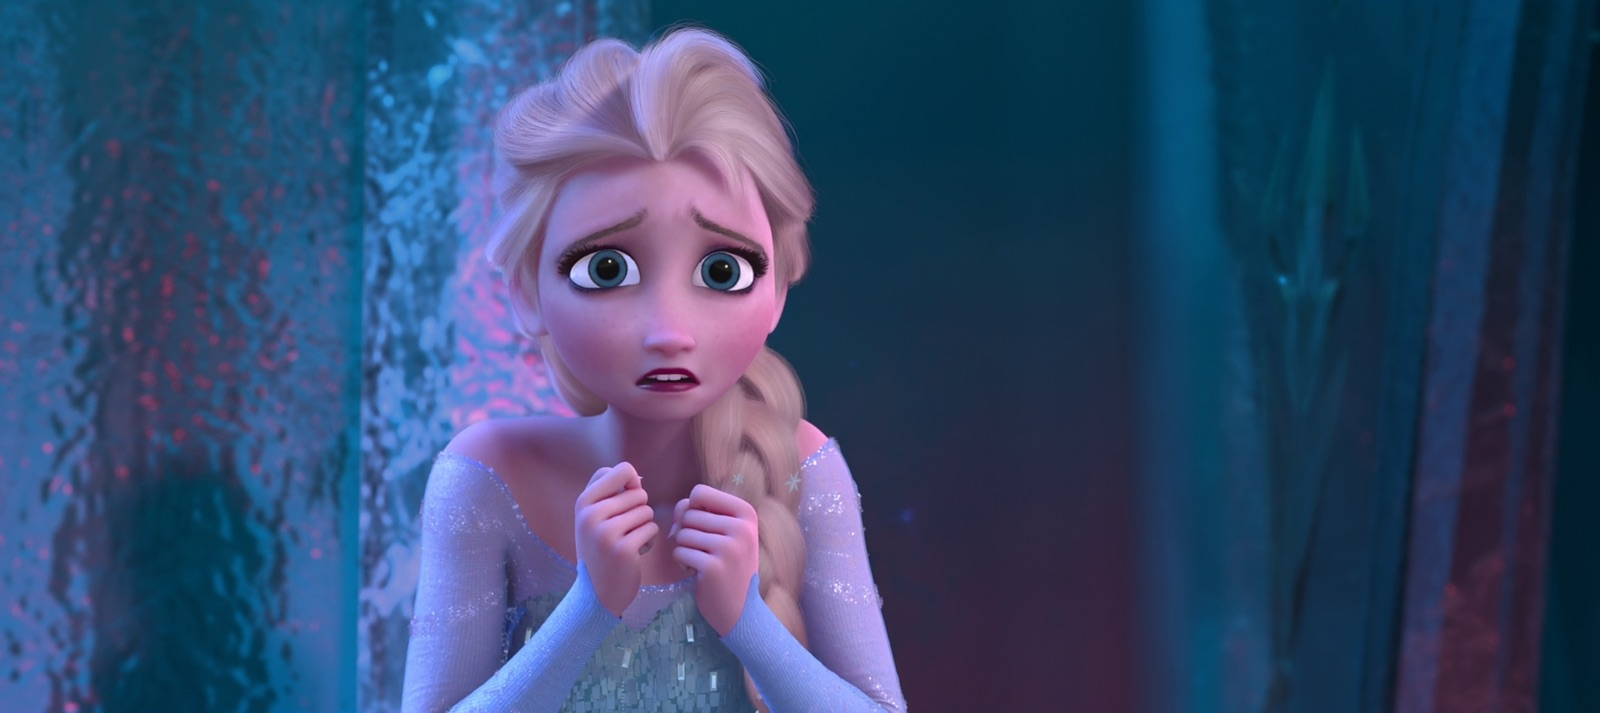 Disney princess movies are finally streaming online, but there's a catch